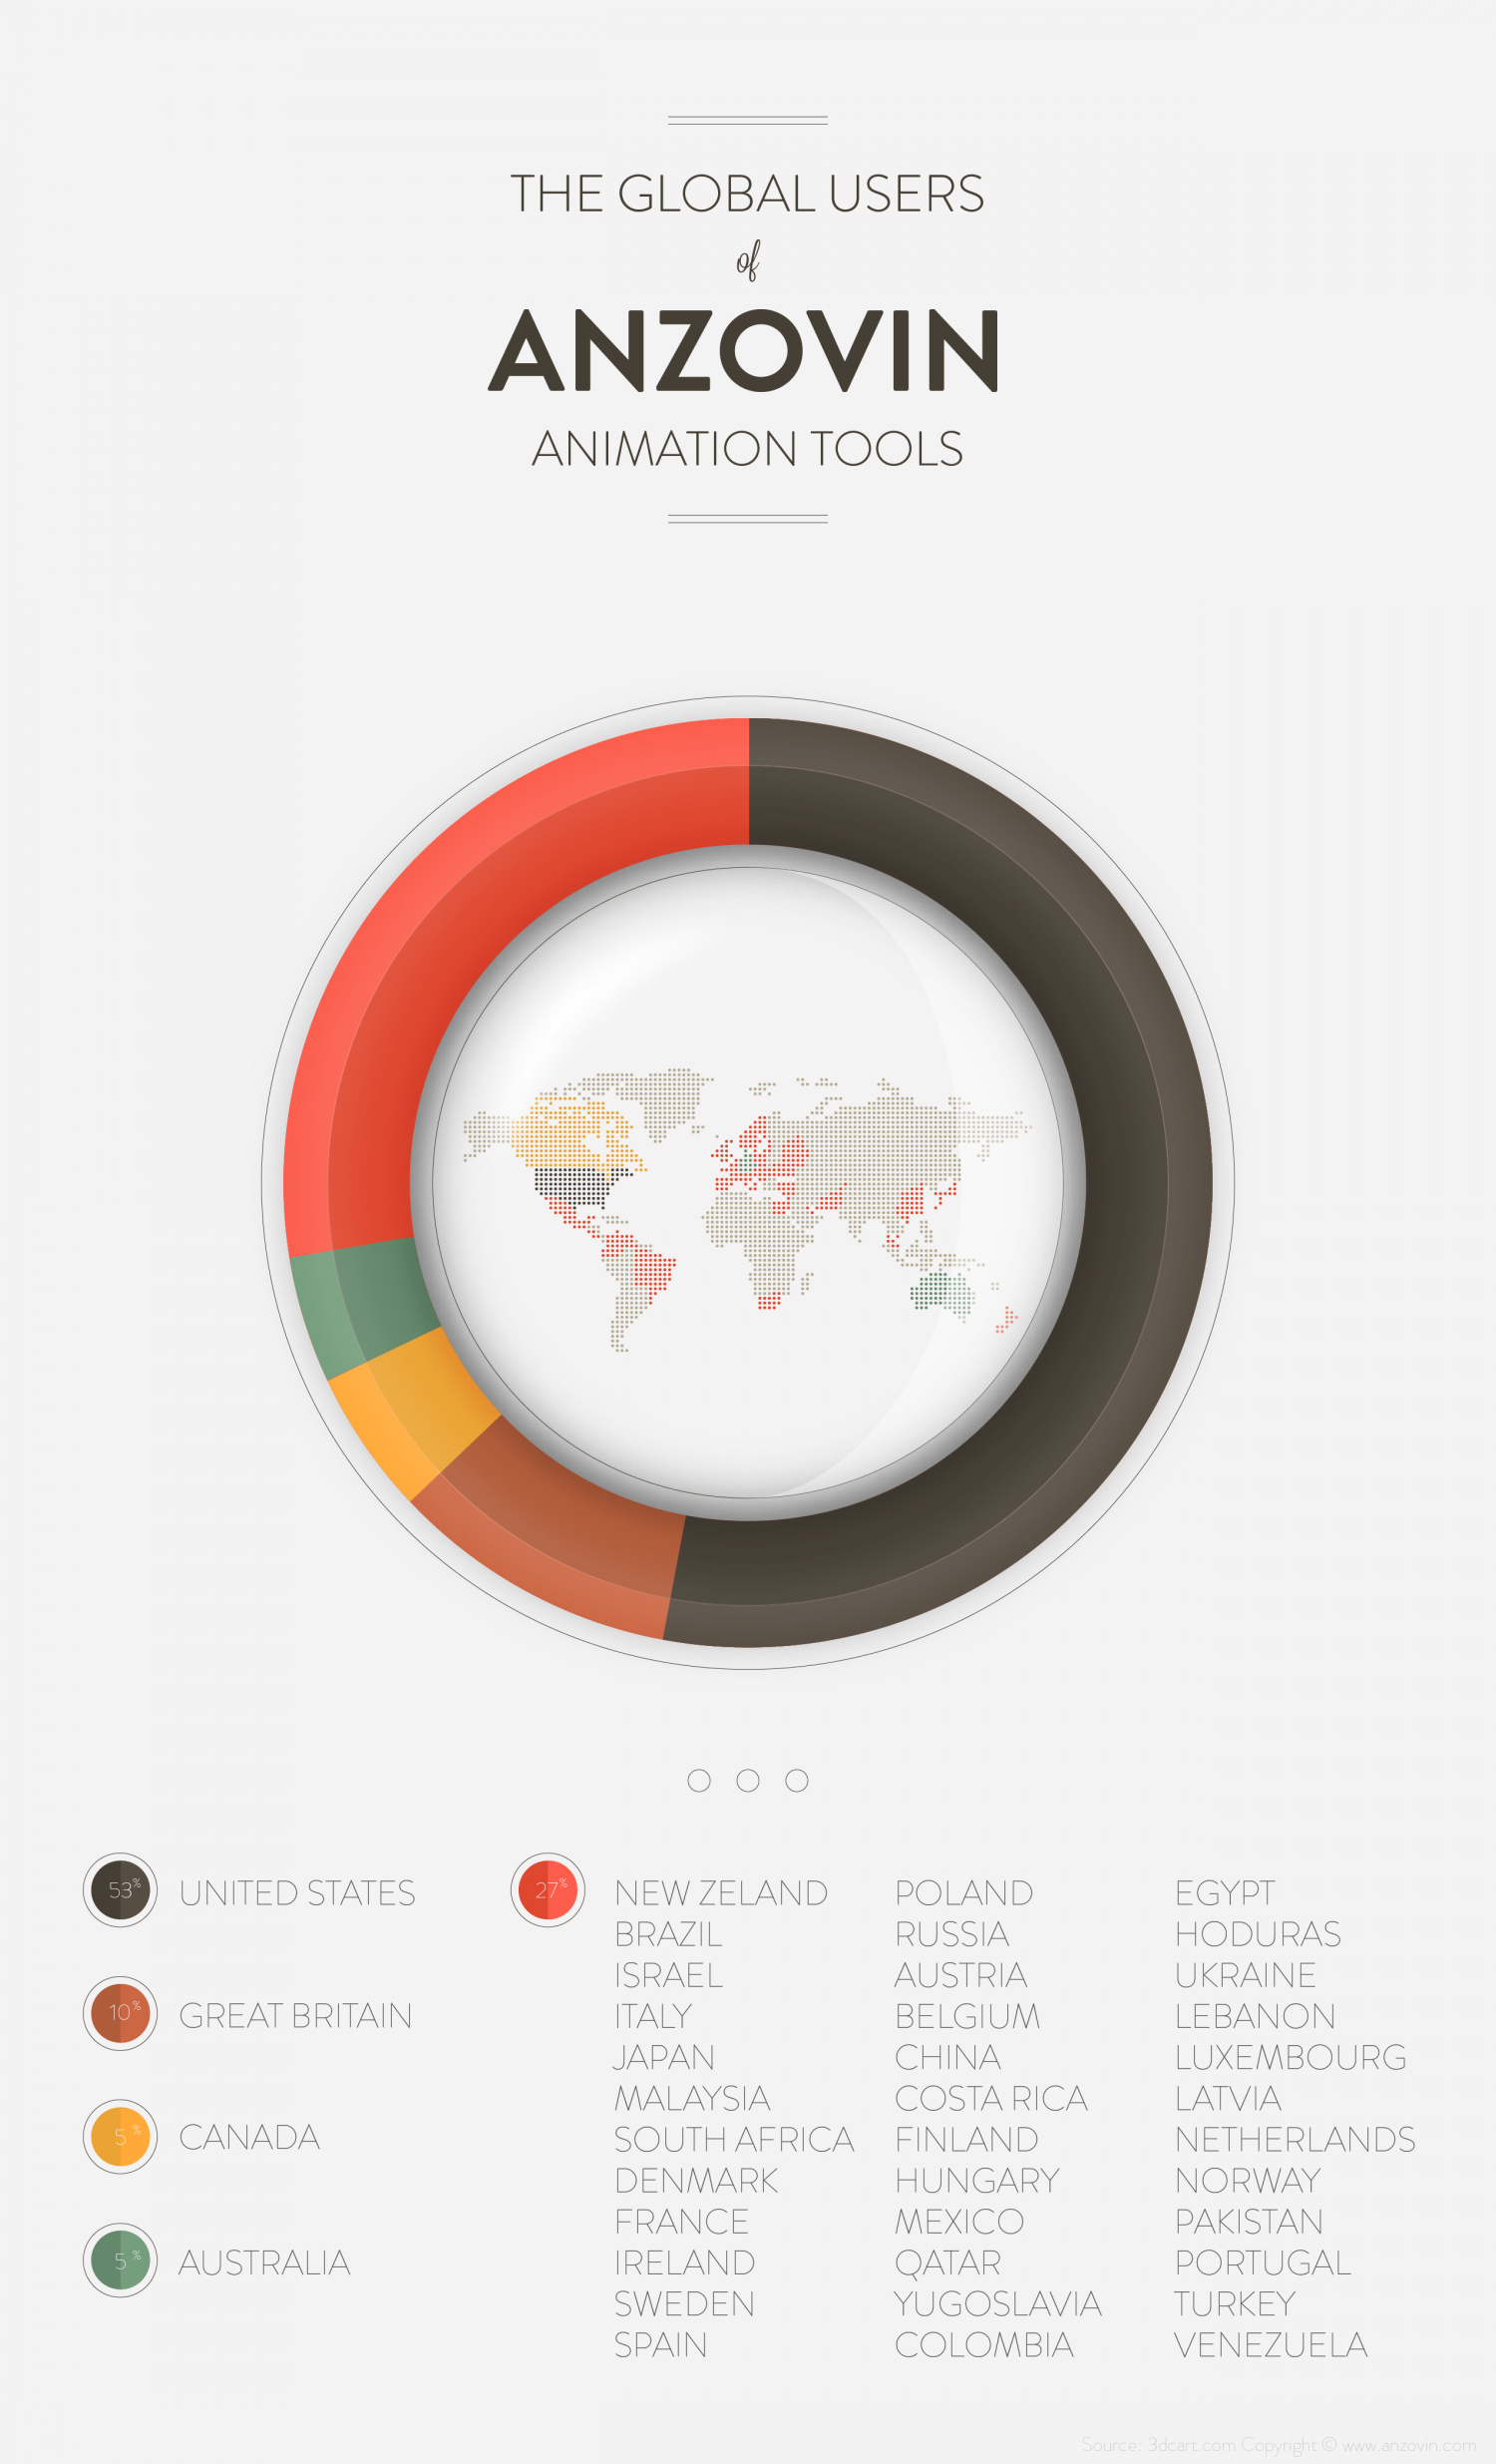 The Global Users of Anzovin Animation Tools Infographic